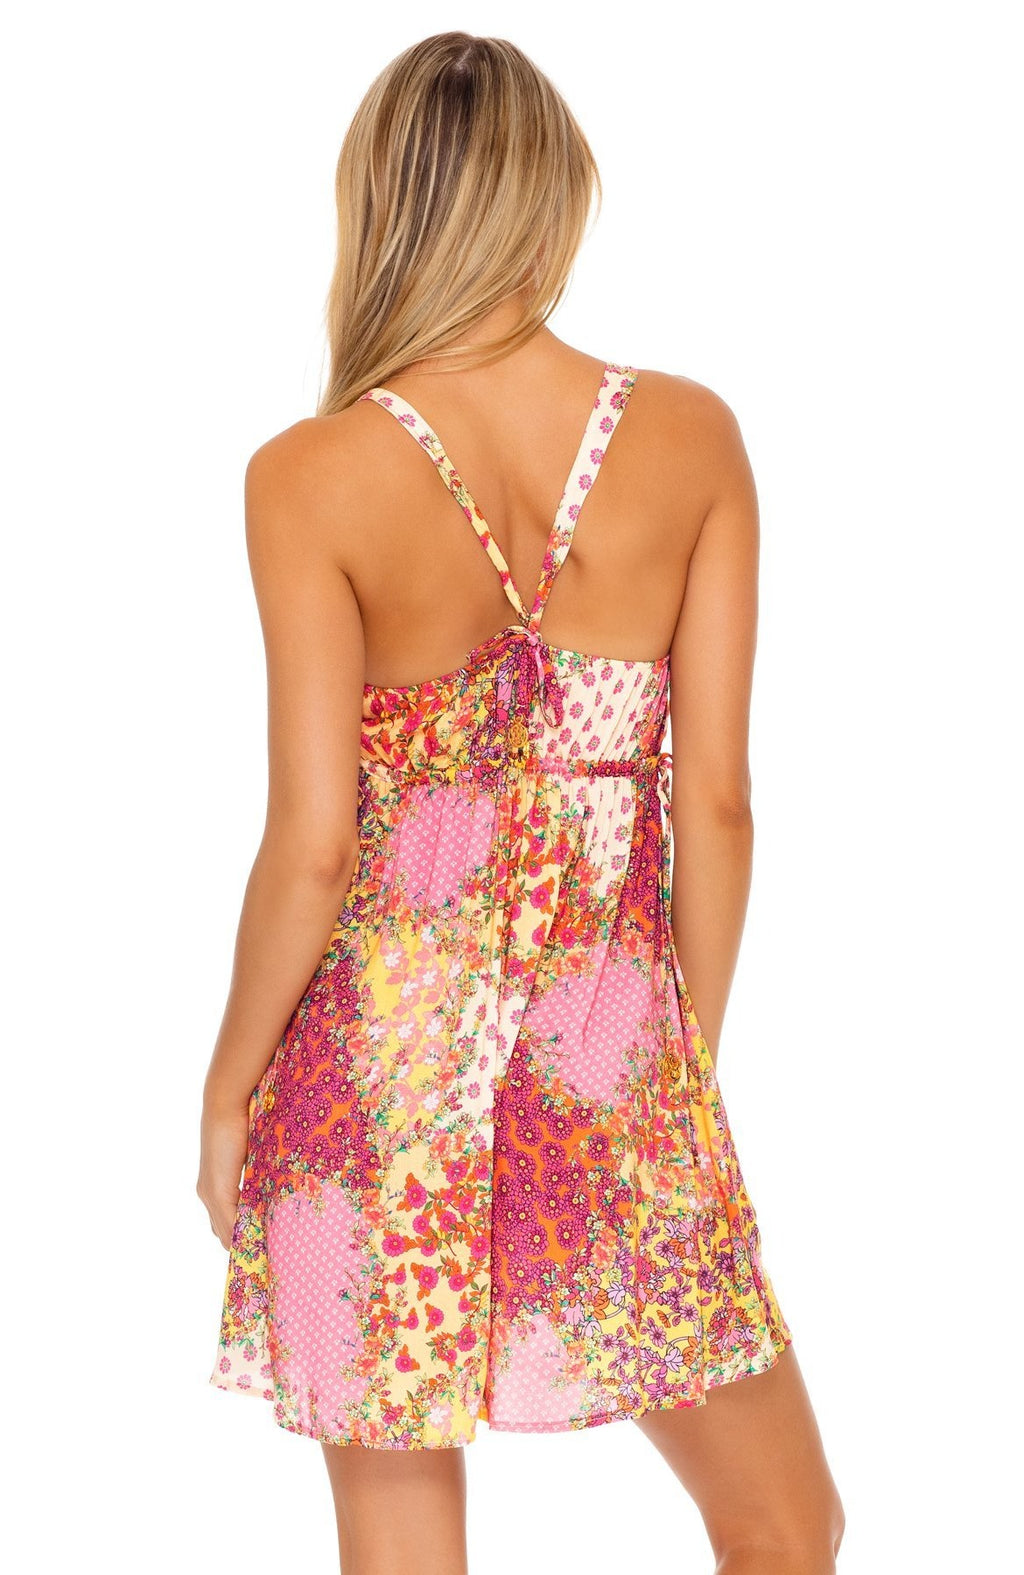 Luli Fama Gypsy Dream V-Neck Short Dress